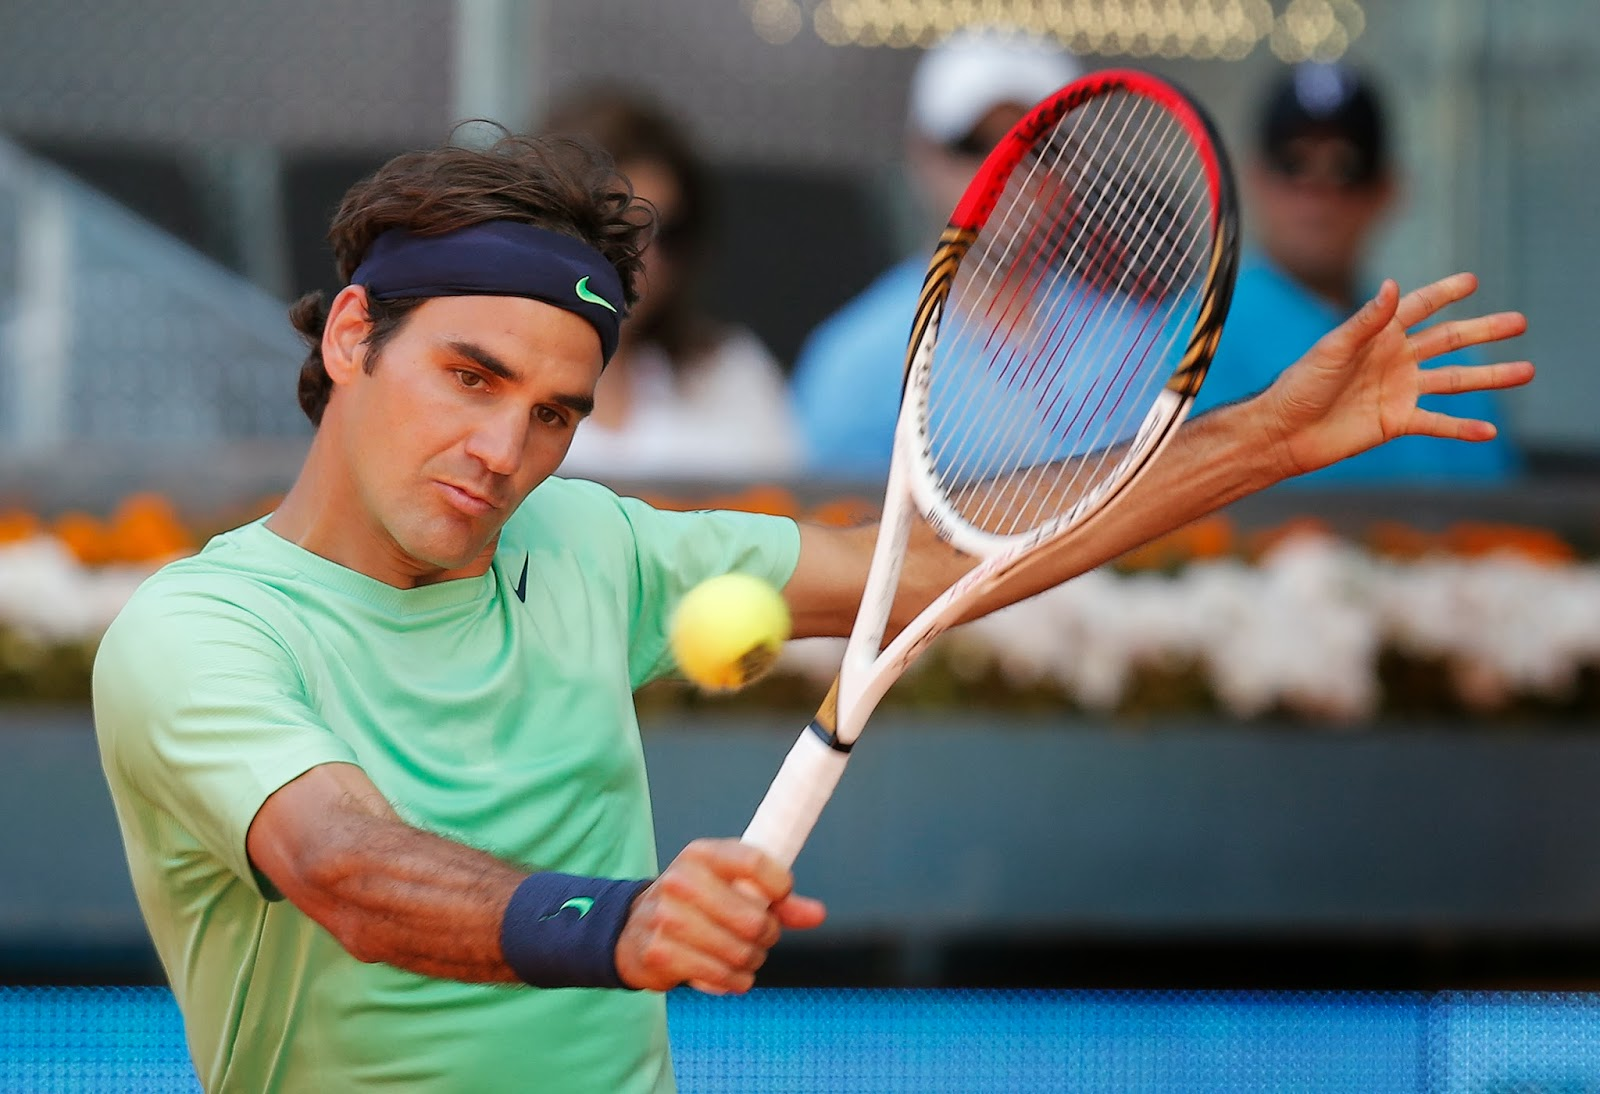 Roger Federer Hd: Tennis World: Roger Federer Latest HD Wallpapers 2013